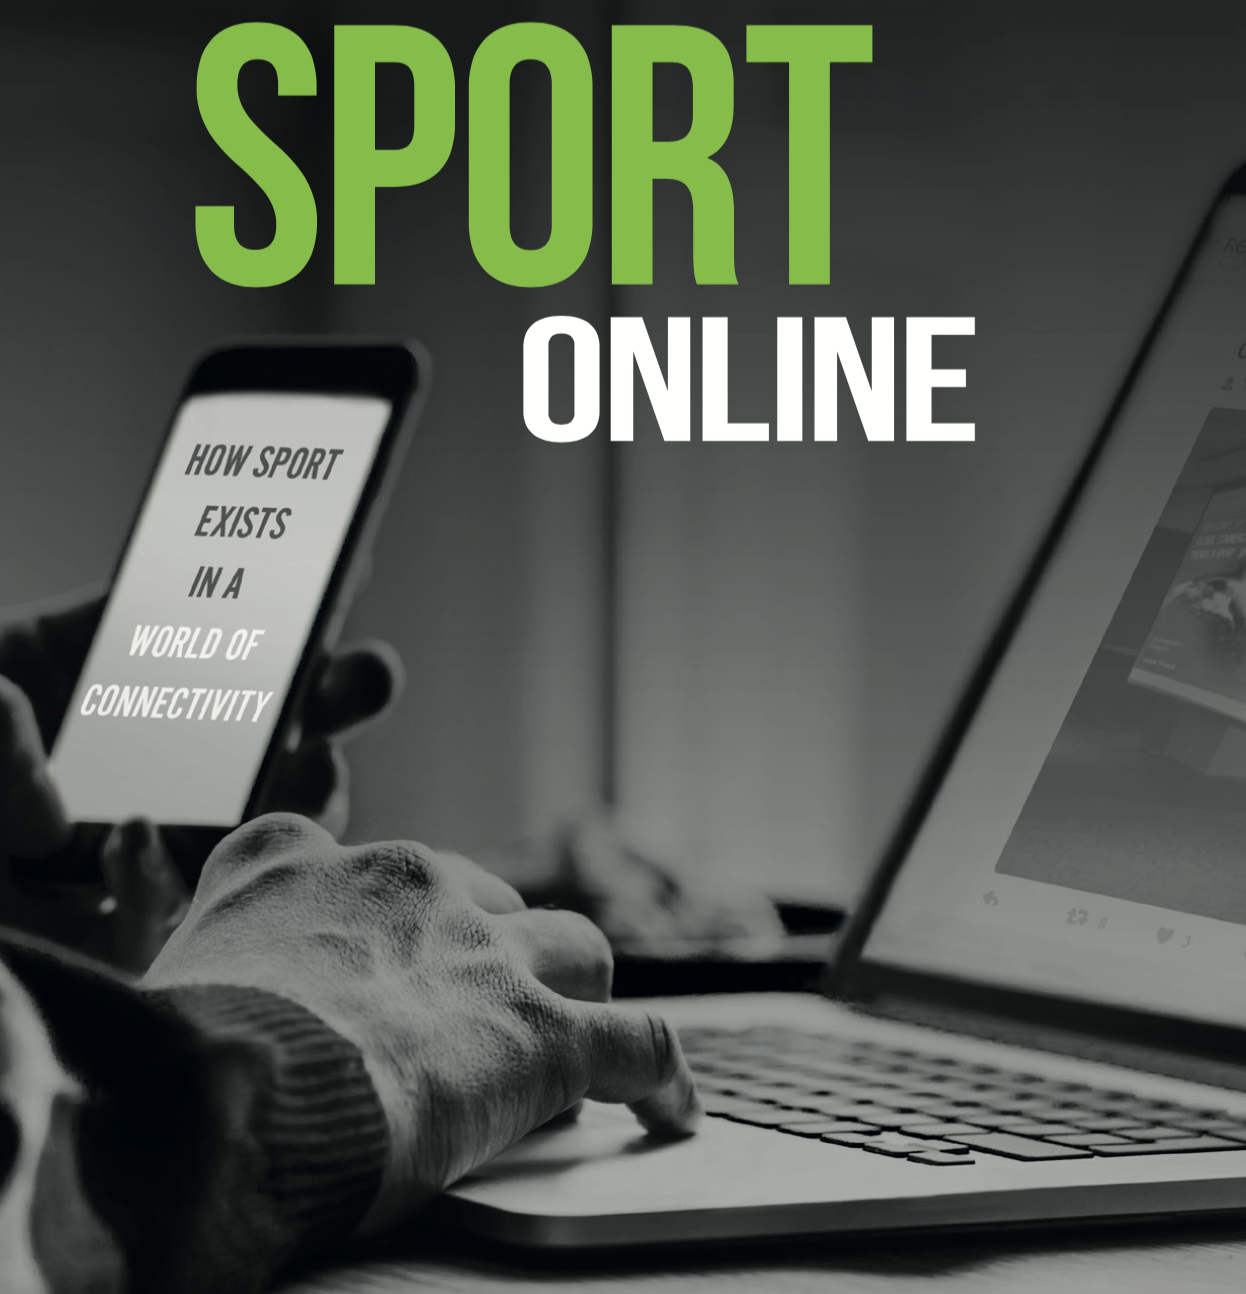 Sport online research report 2016